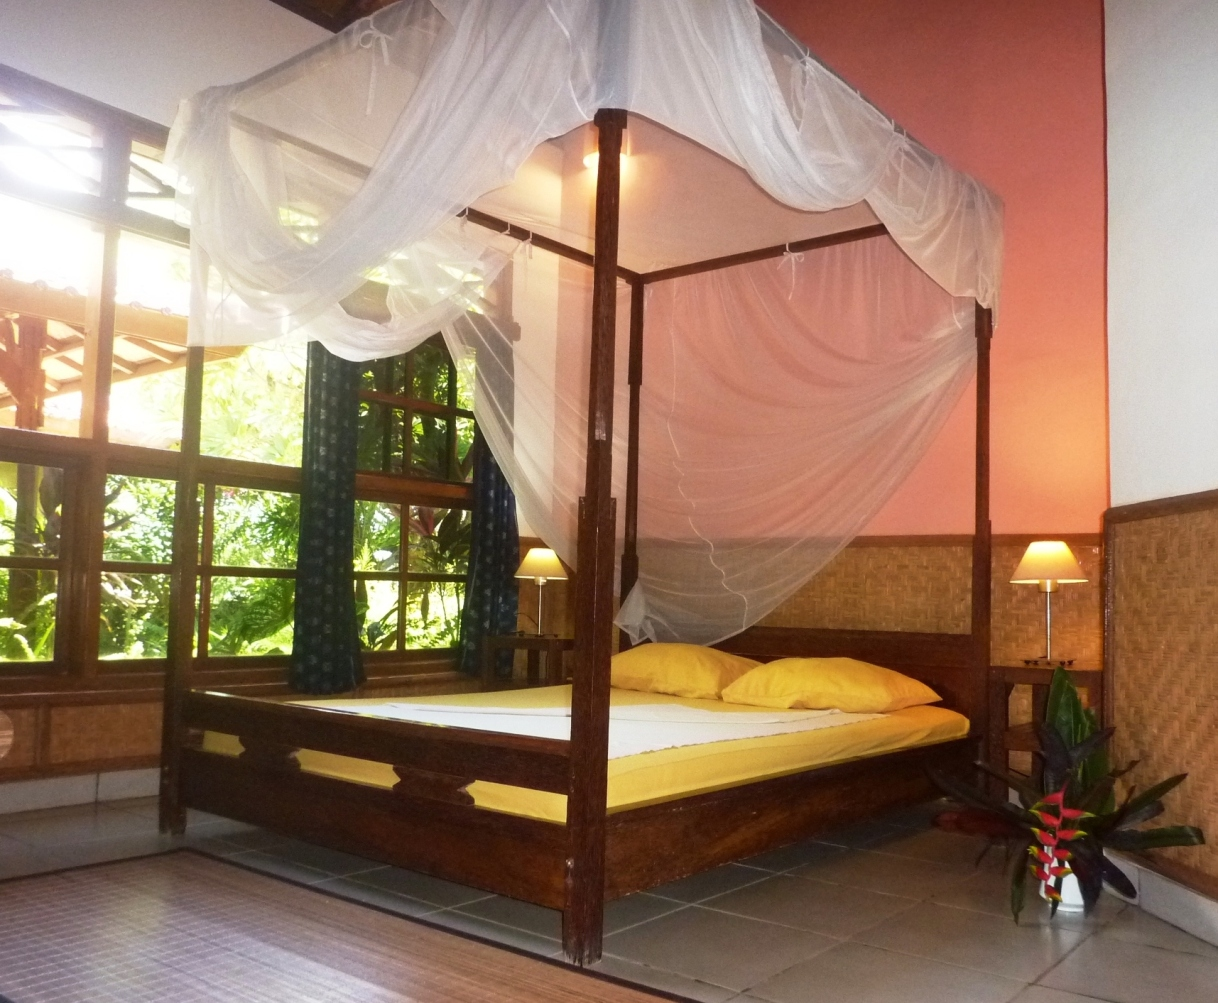 one of the two bedrooms with queen sized bed